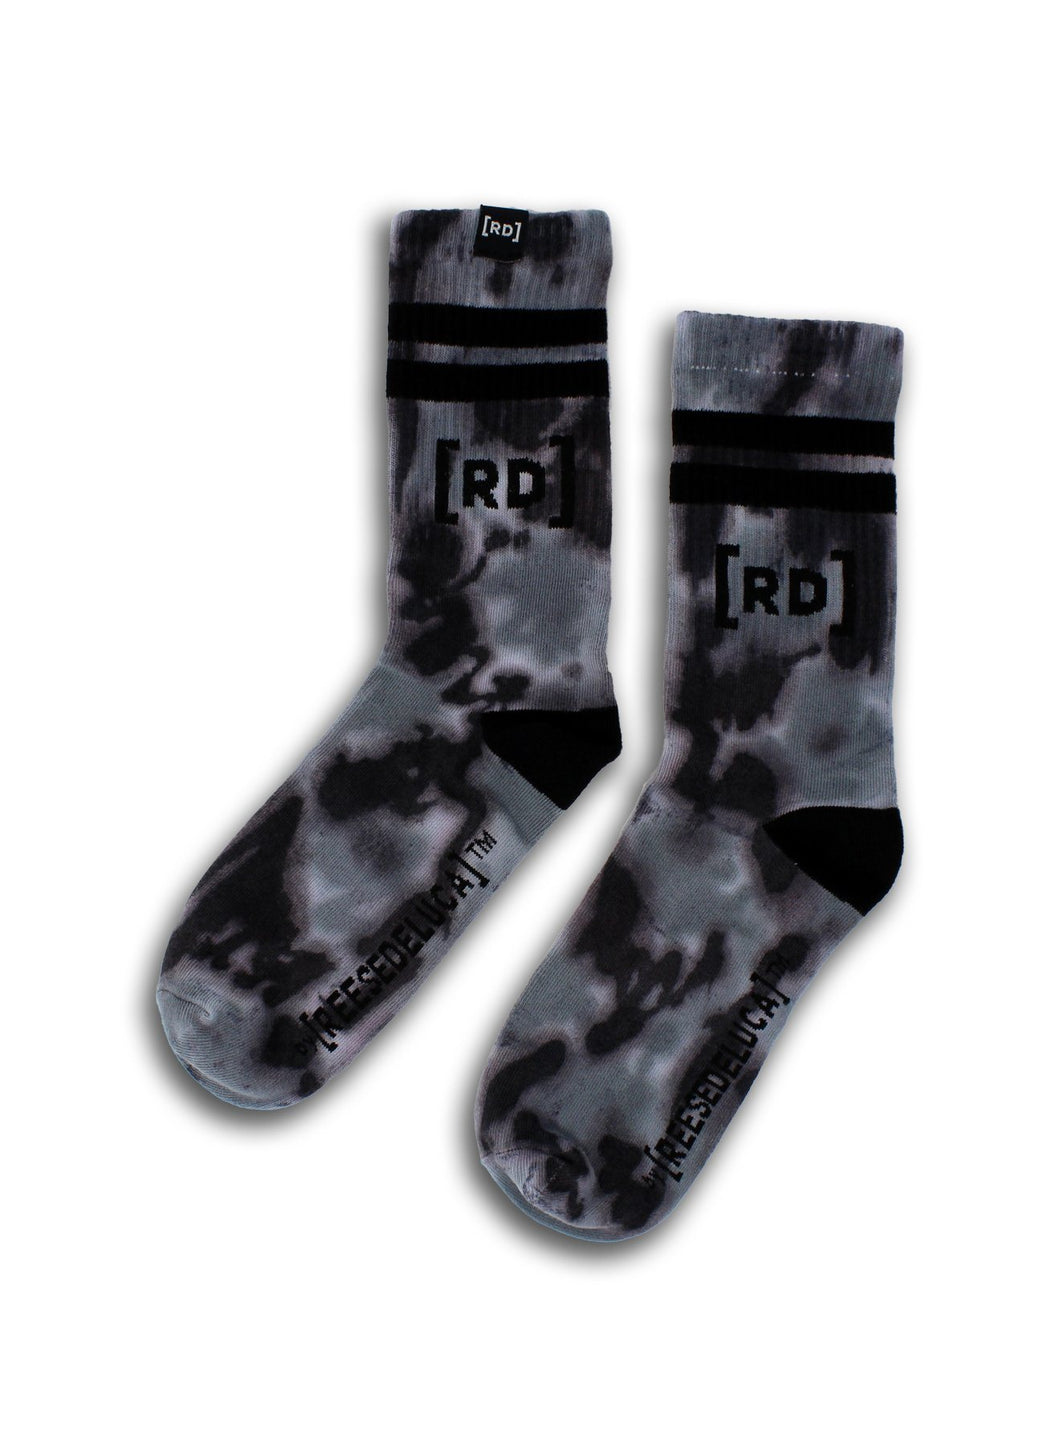 Brooklyn Striped Tie Dye Socks in Black Grey Socks by REESEDELUCA One Size Black Grey